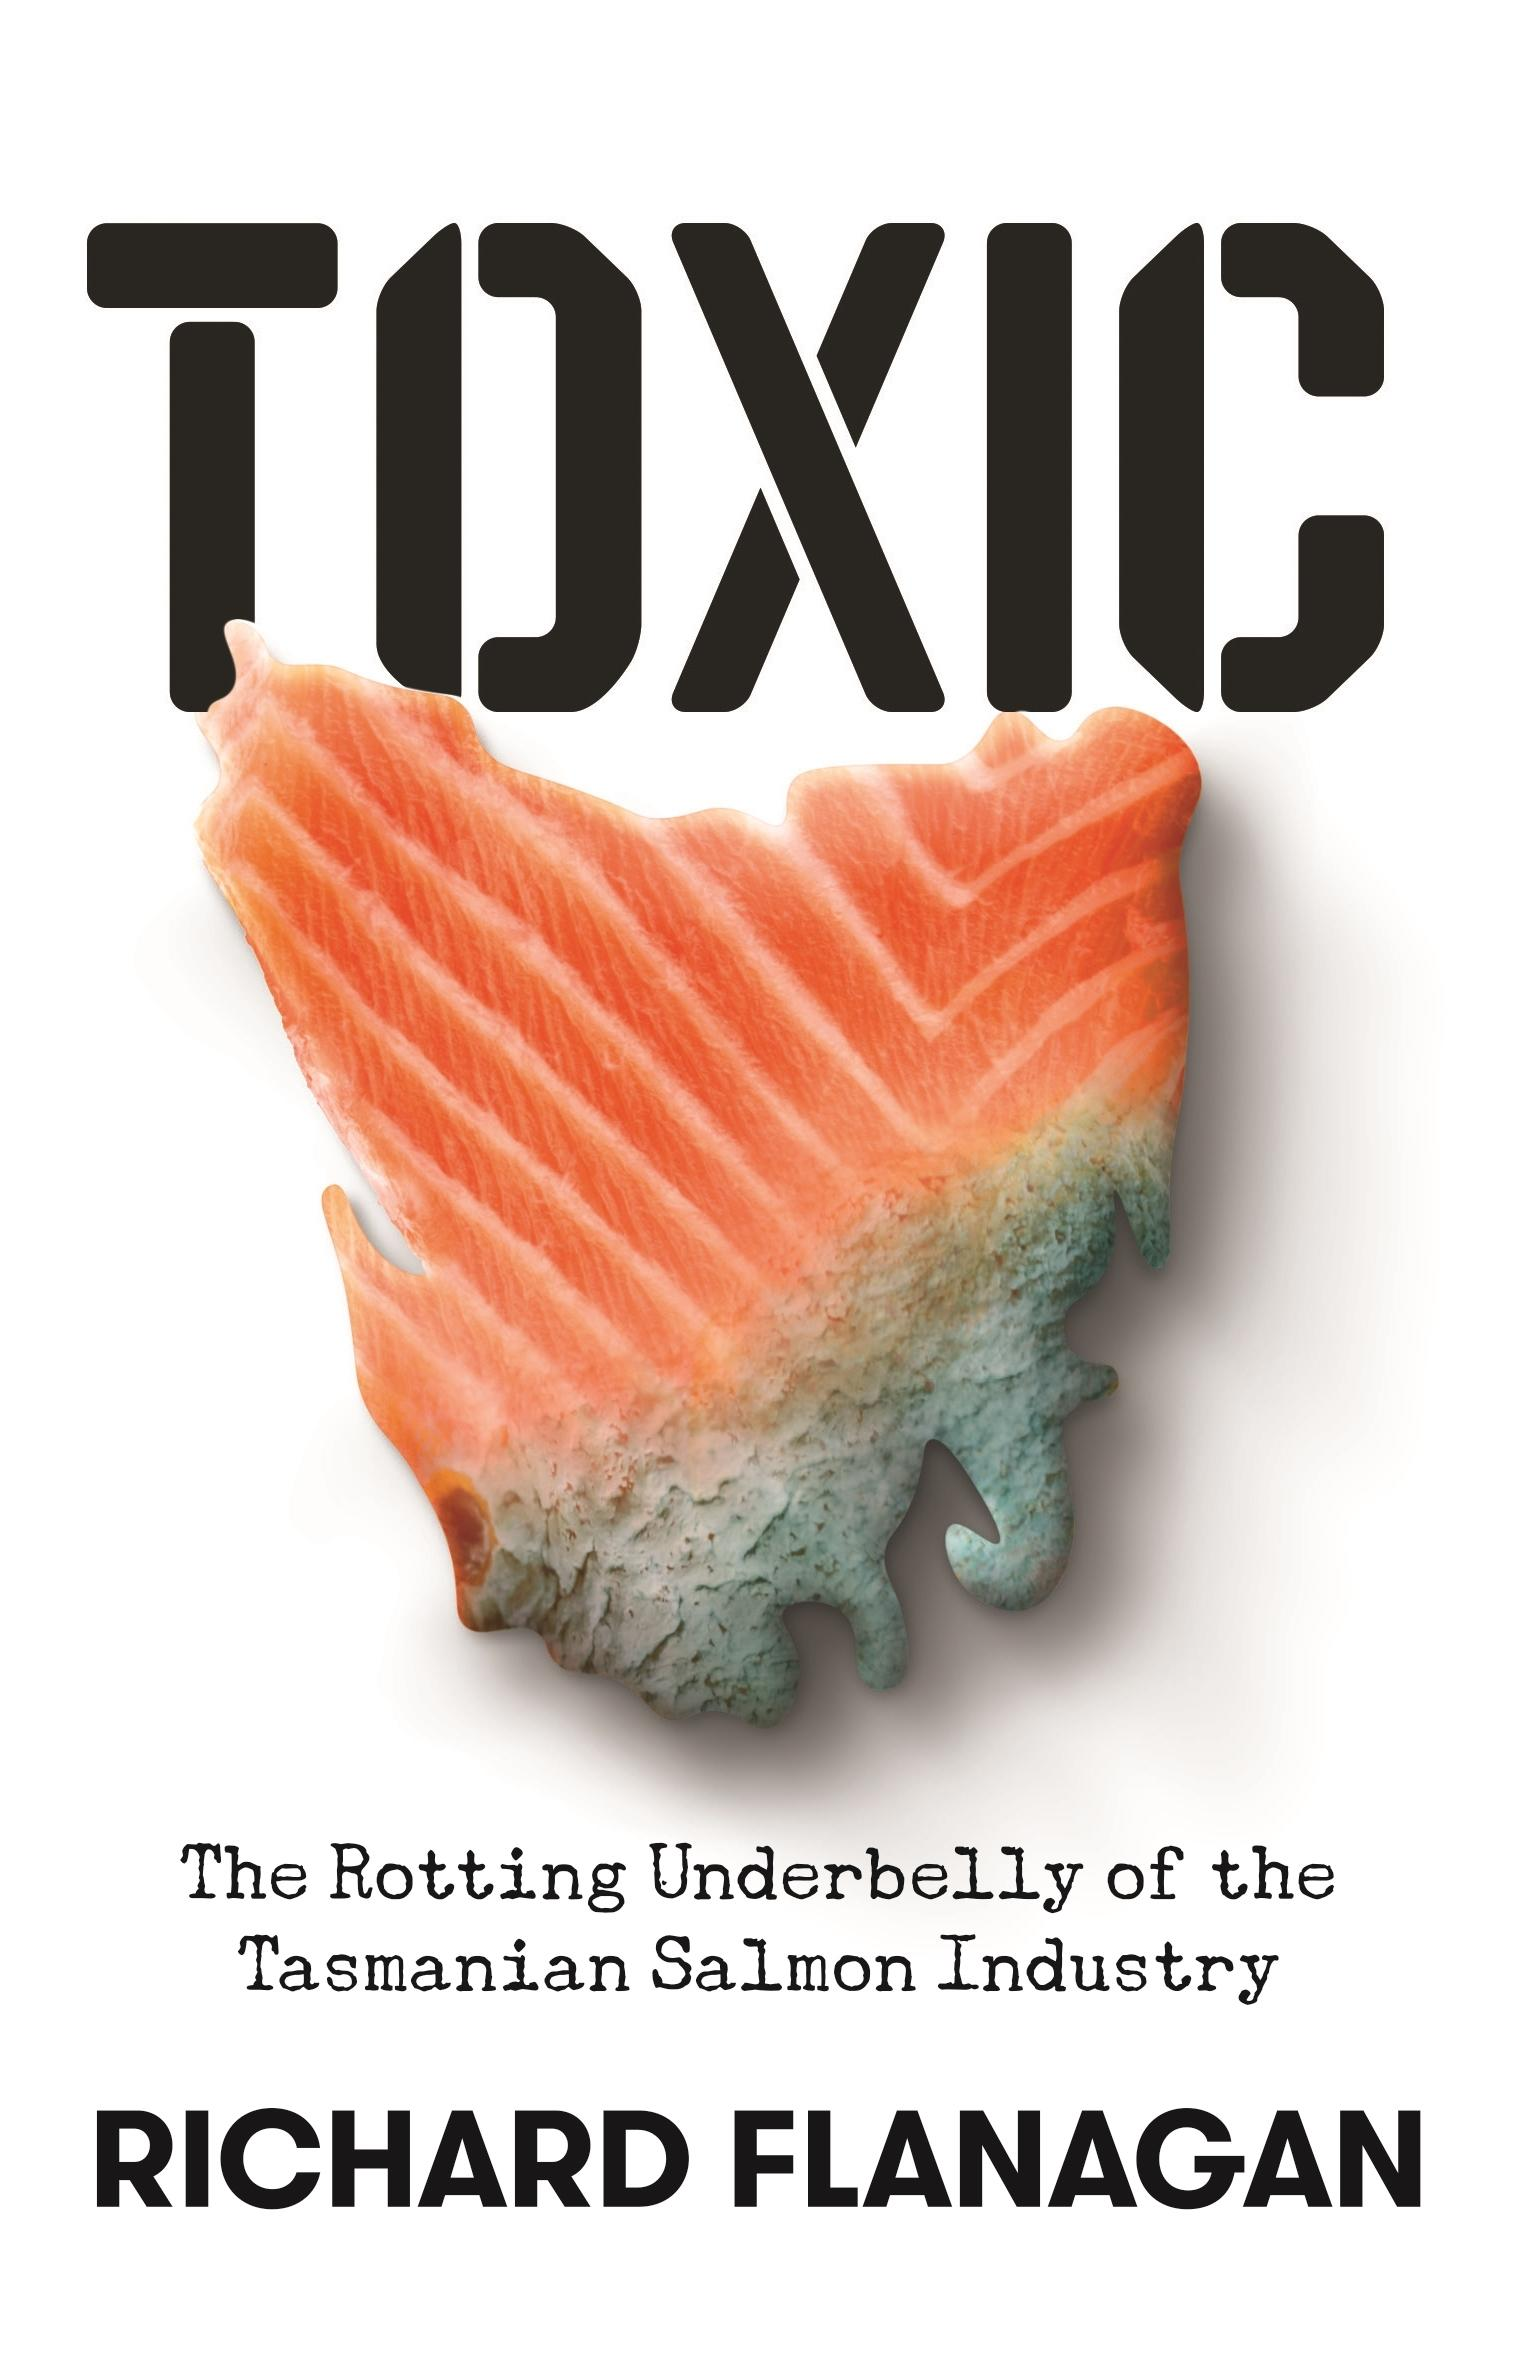 Toxic: The Rotting Underbelly of the Tasmanian Salmon Industry